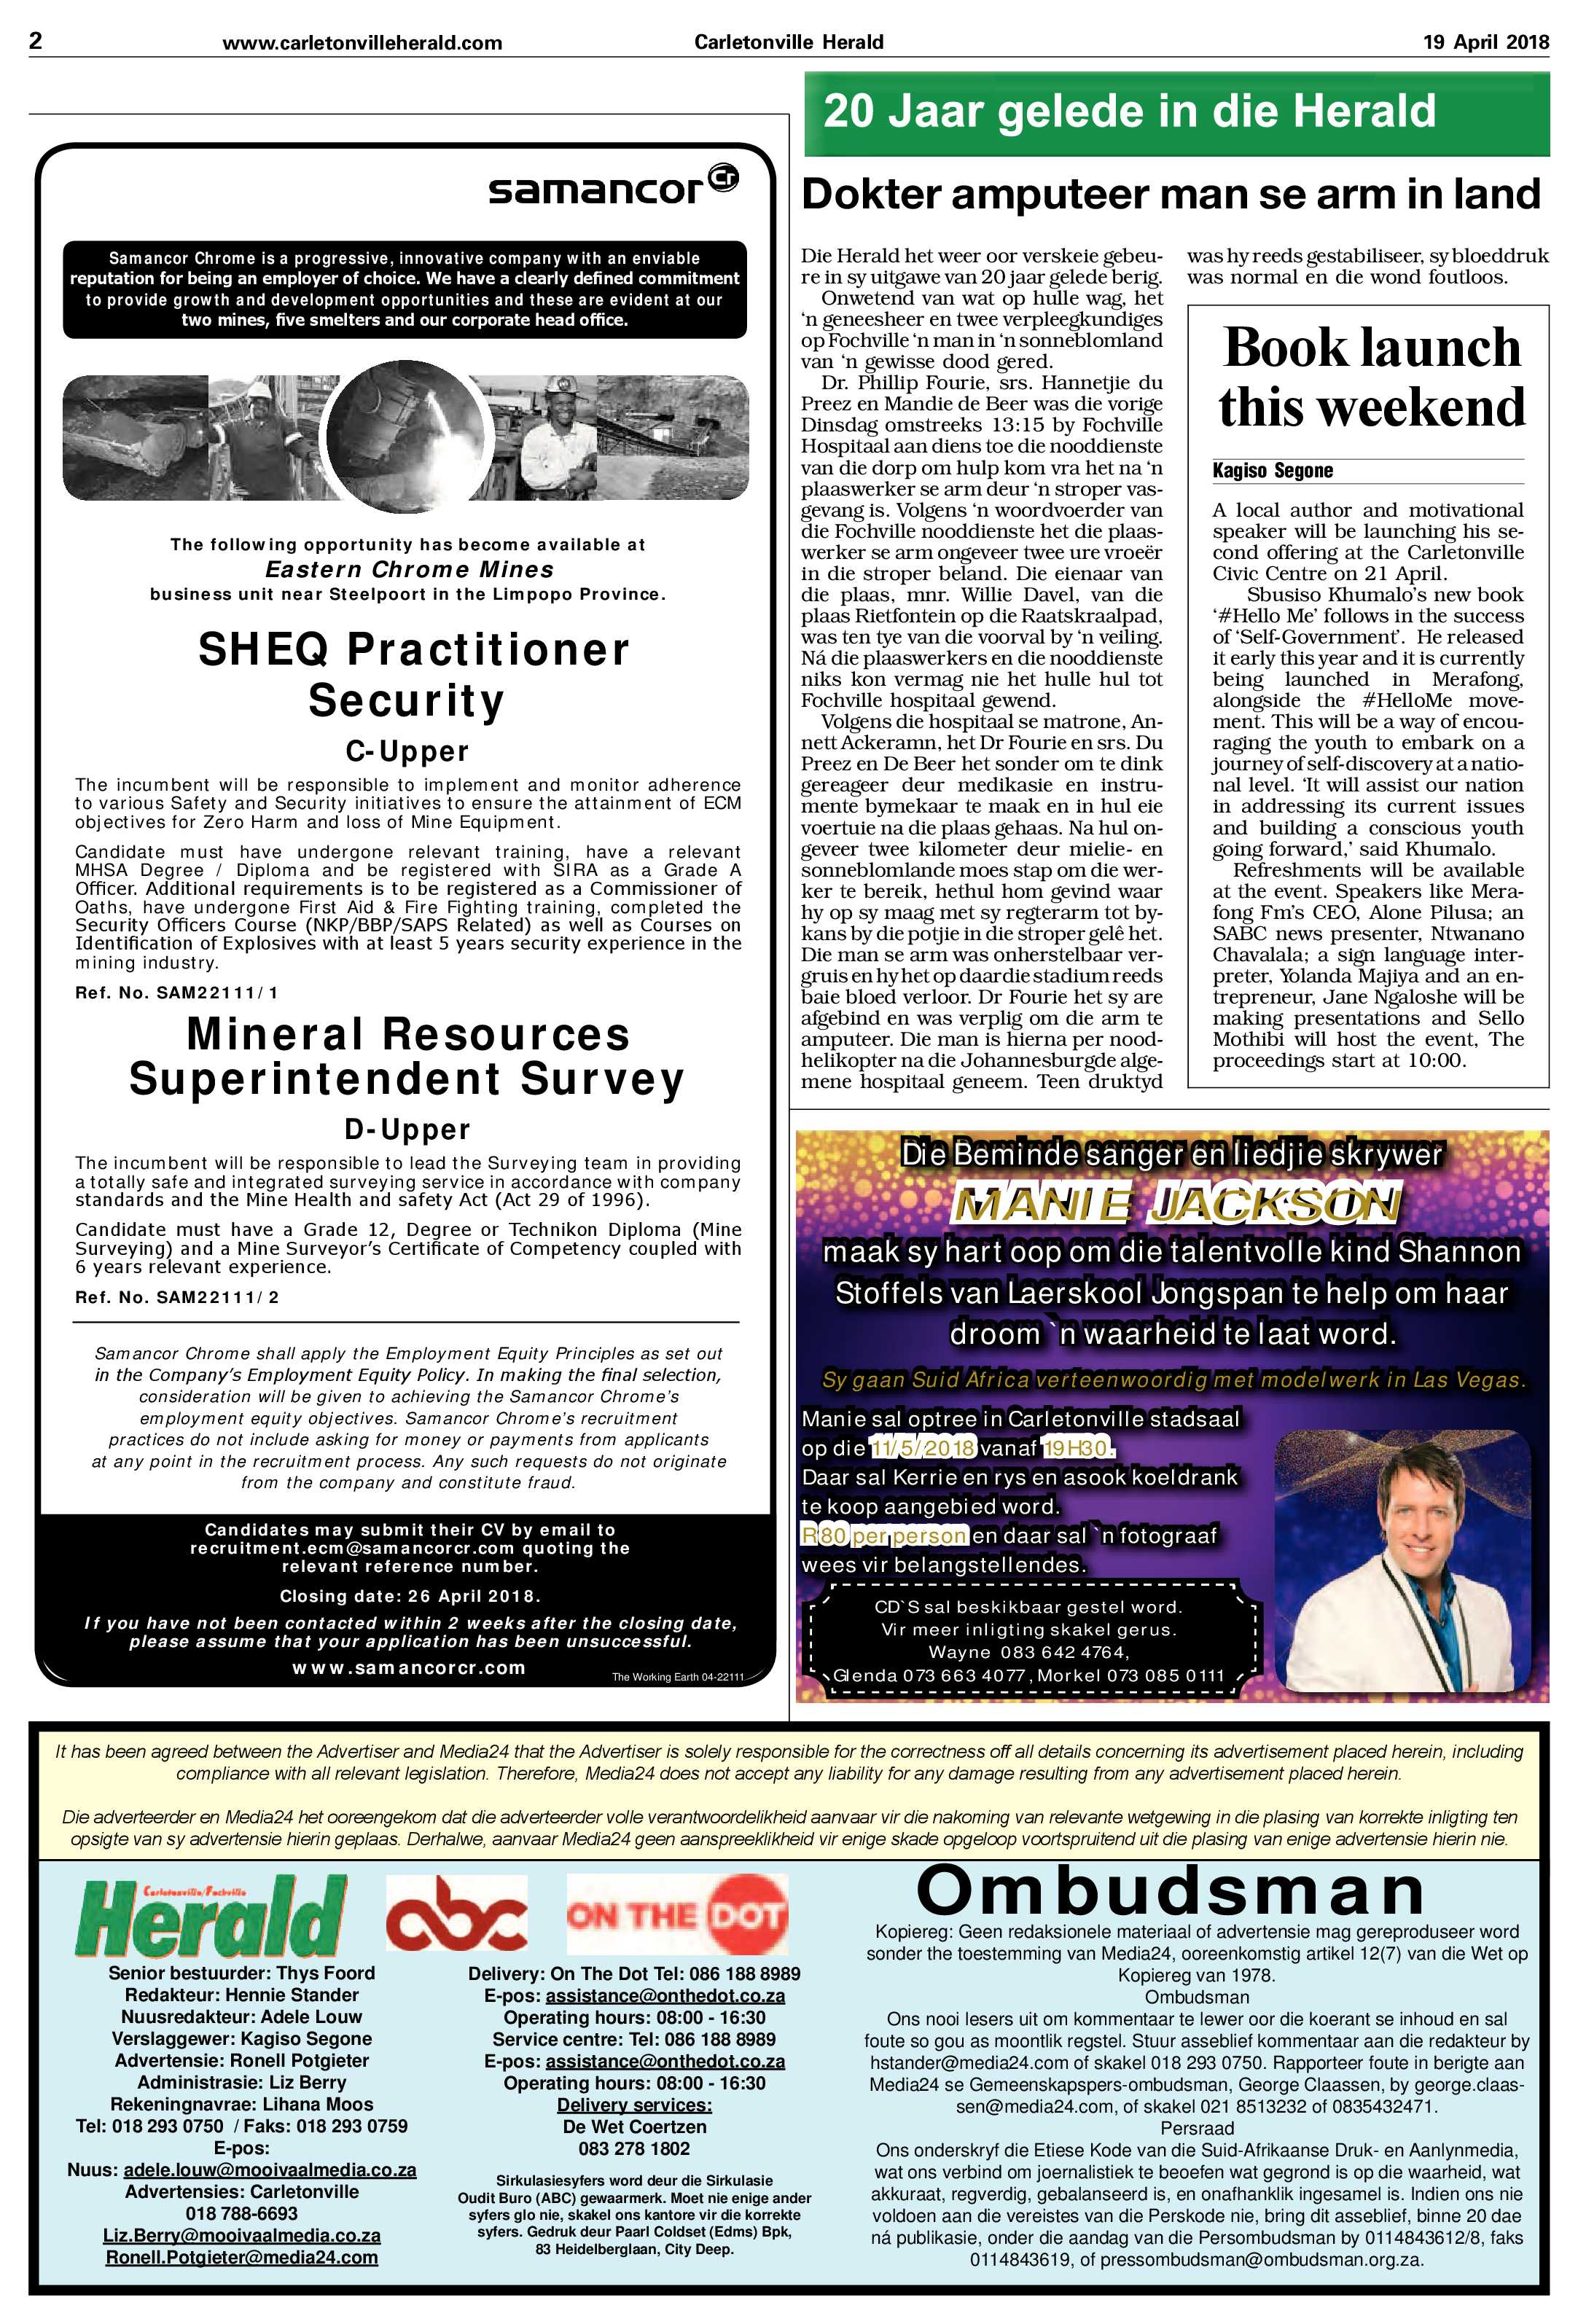 19-april-2018-epapers-page-2